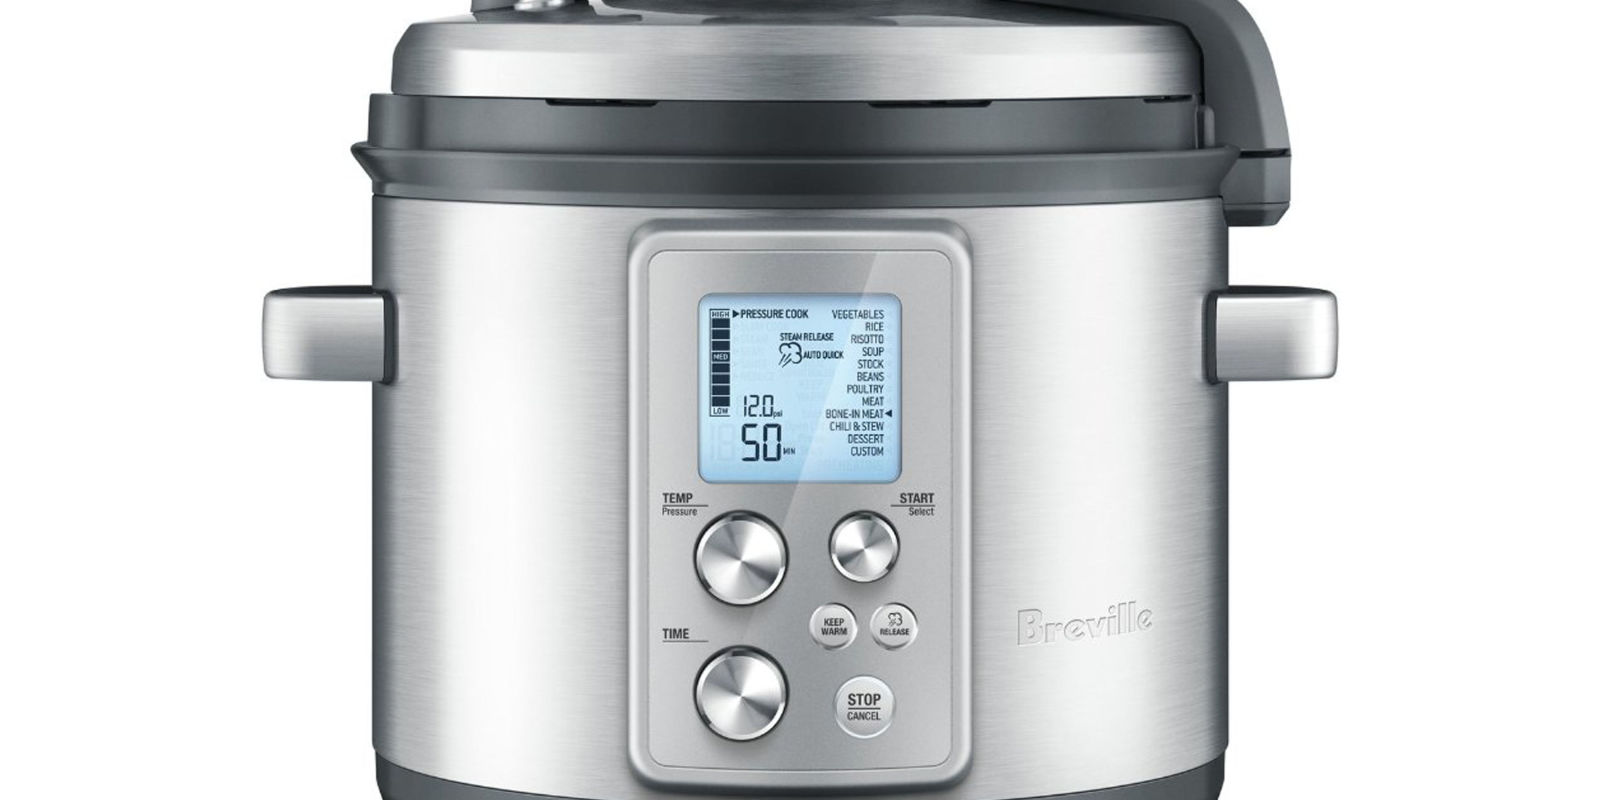 appliance reviews best small appliances february 2017